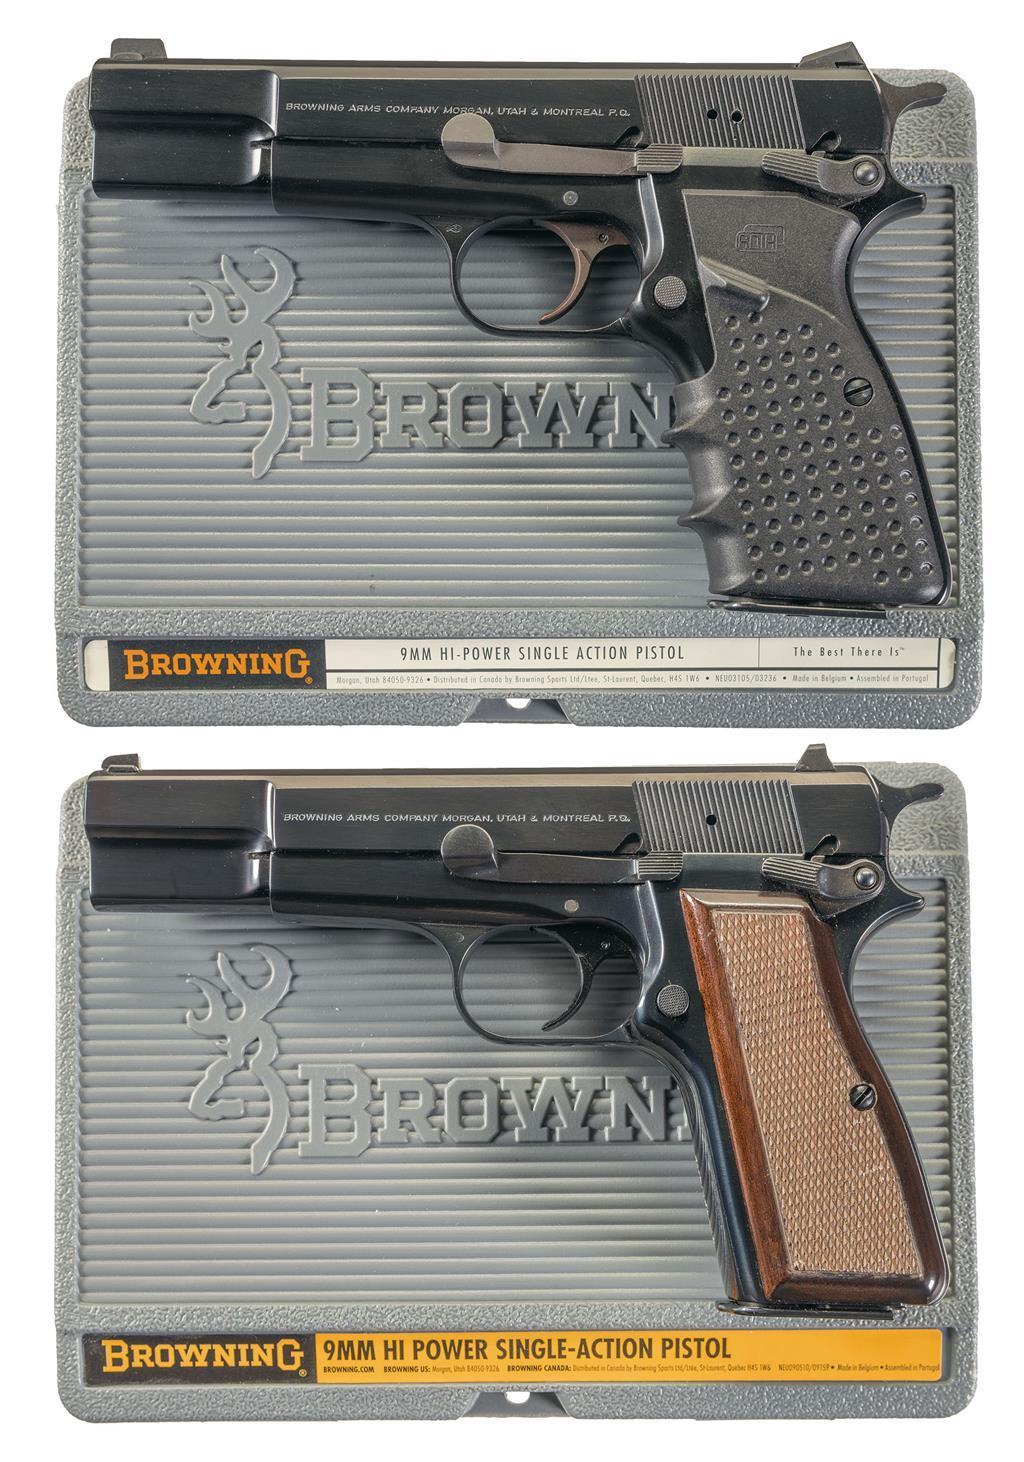 Two Browning Hi-Power Semi-Automatic Pistols w/ Cases